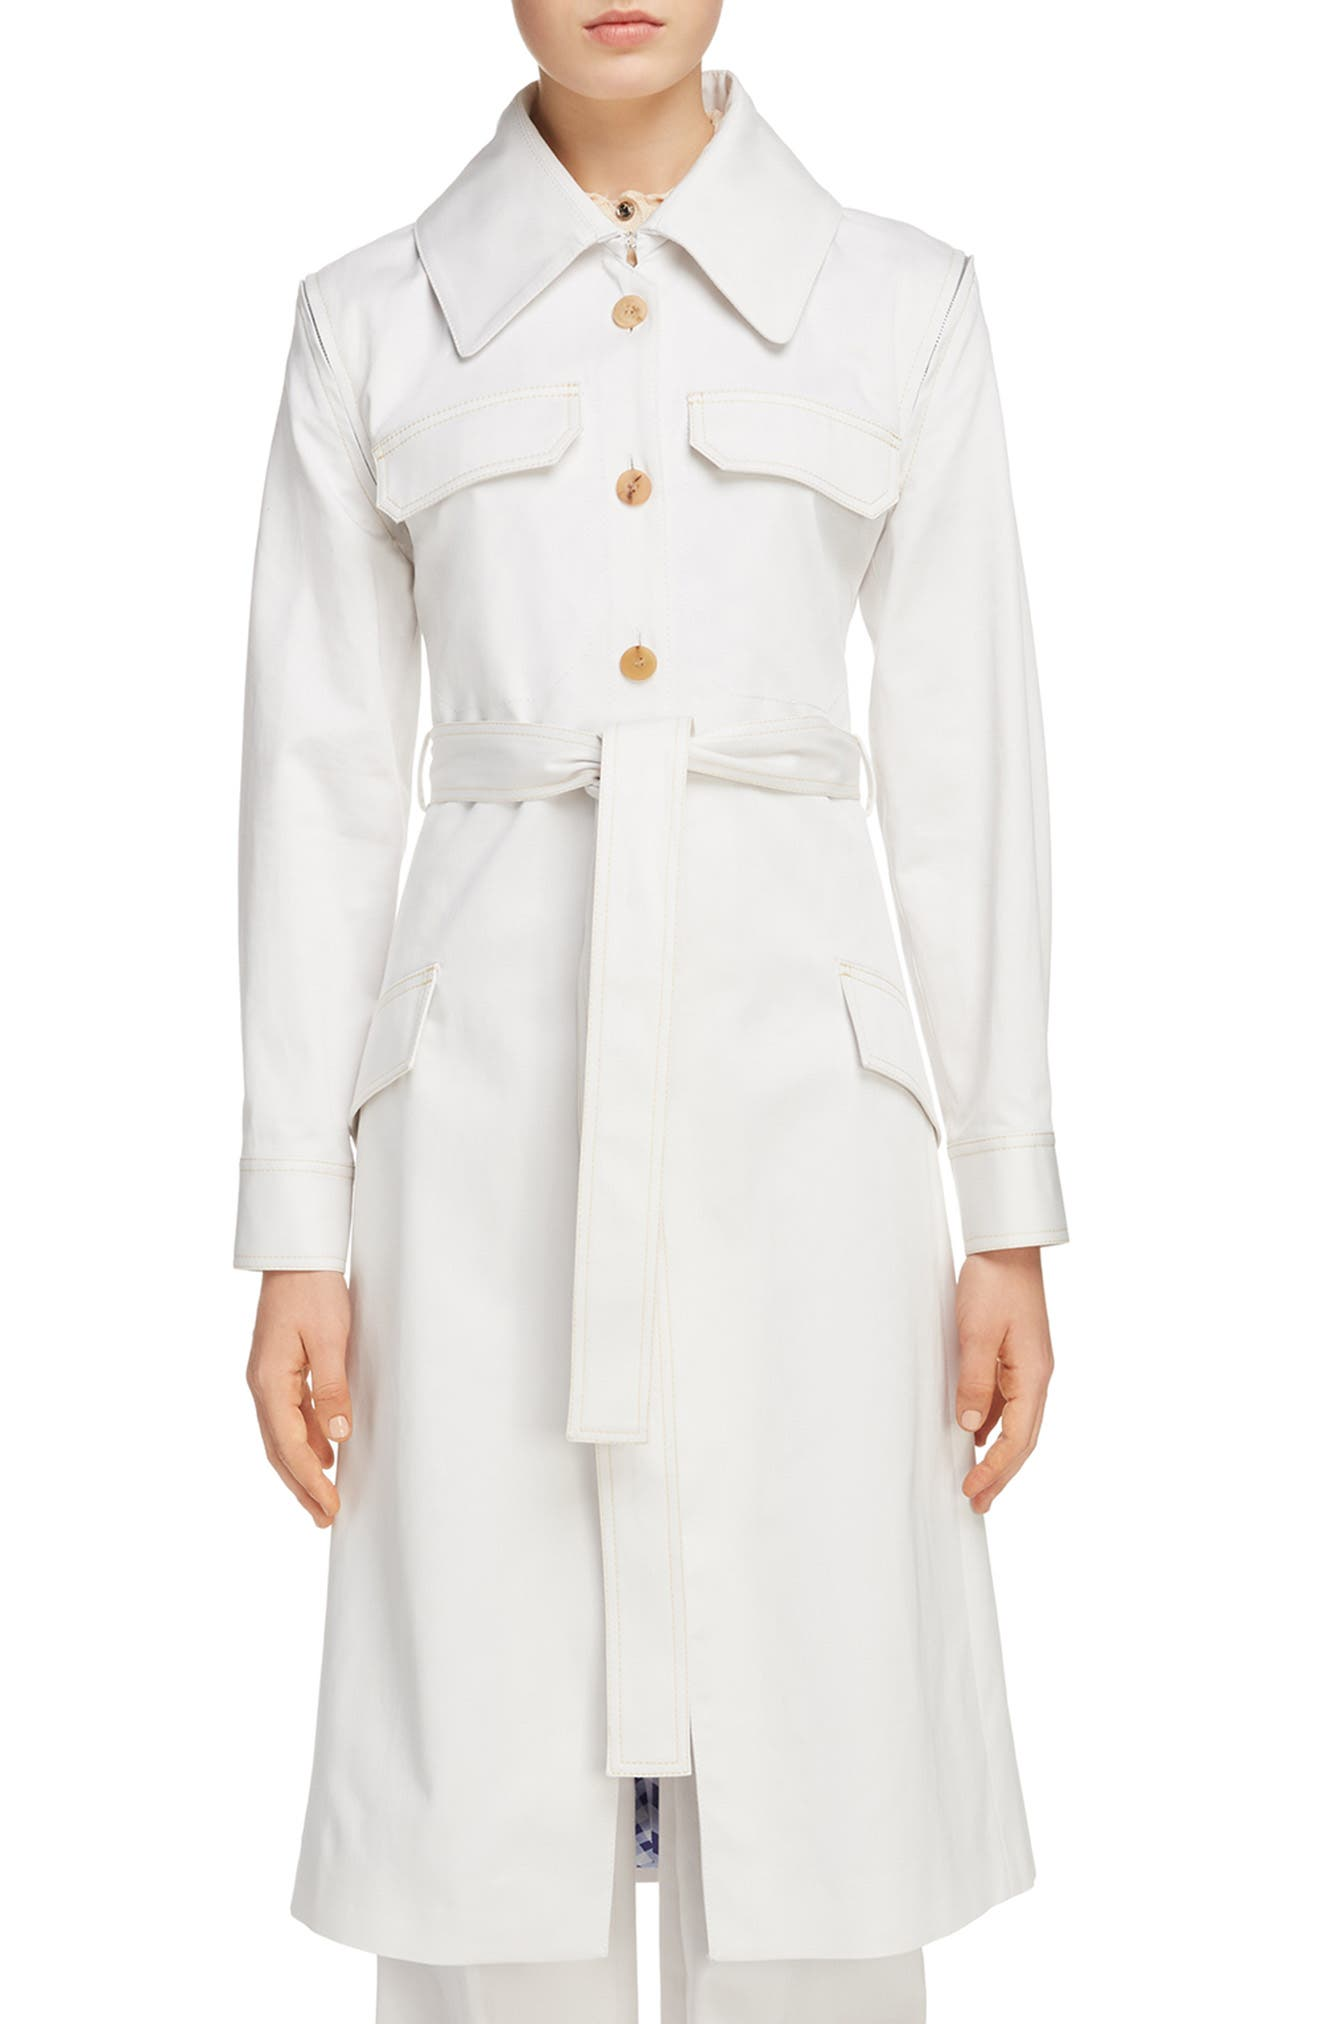 Acne Studios Olesia Removable Sleeve Belted Coat